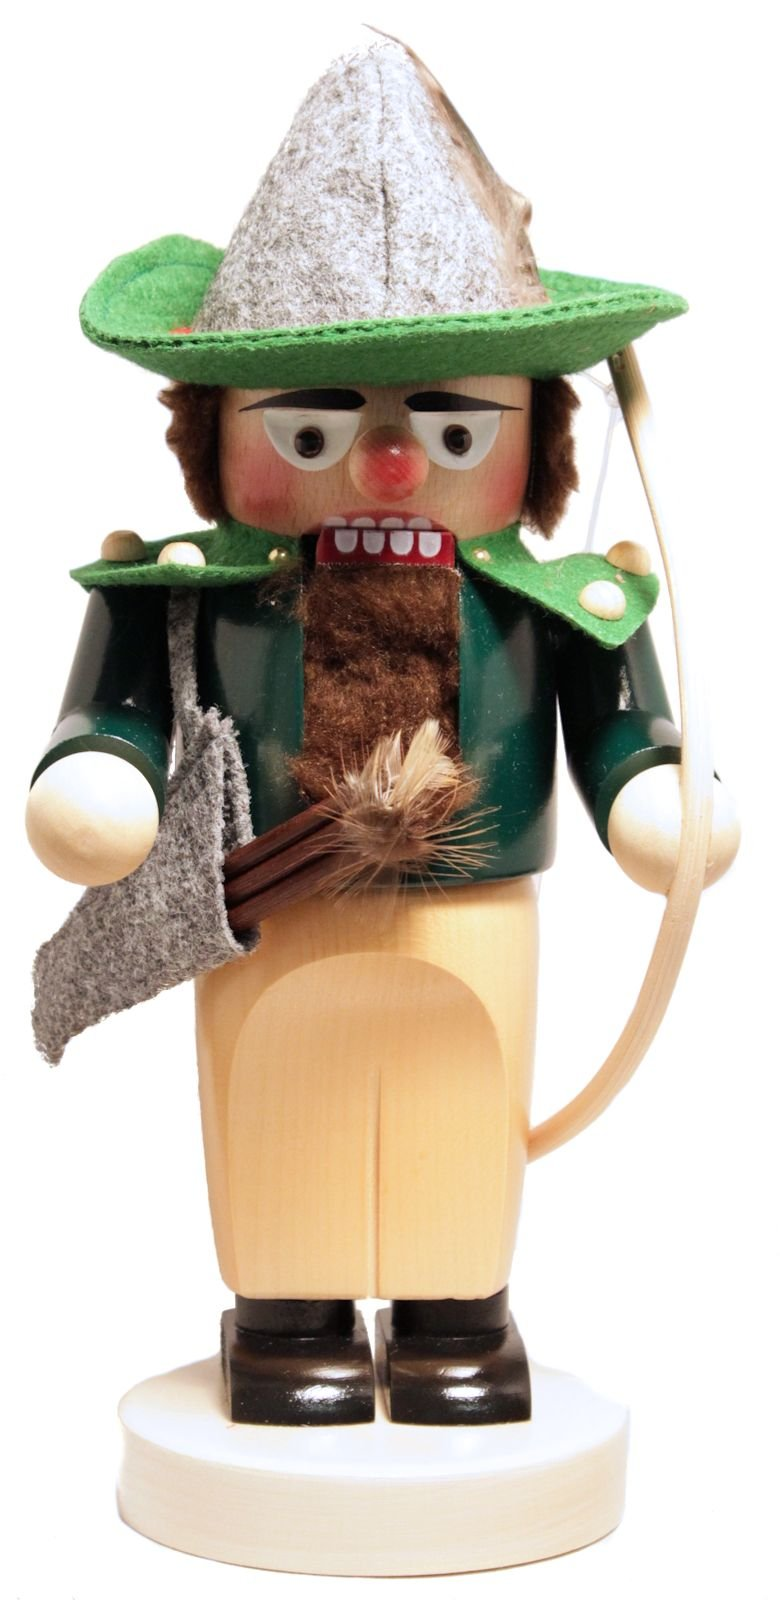 Steinbach SIGNED Chubby Robin Hood German Wooden Christmas Nutcracker Decoration